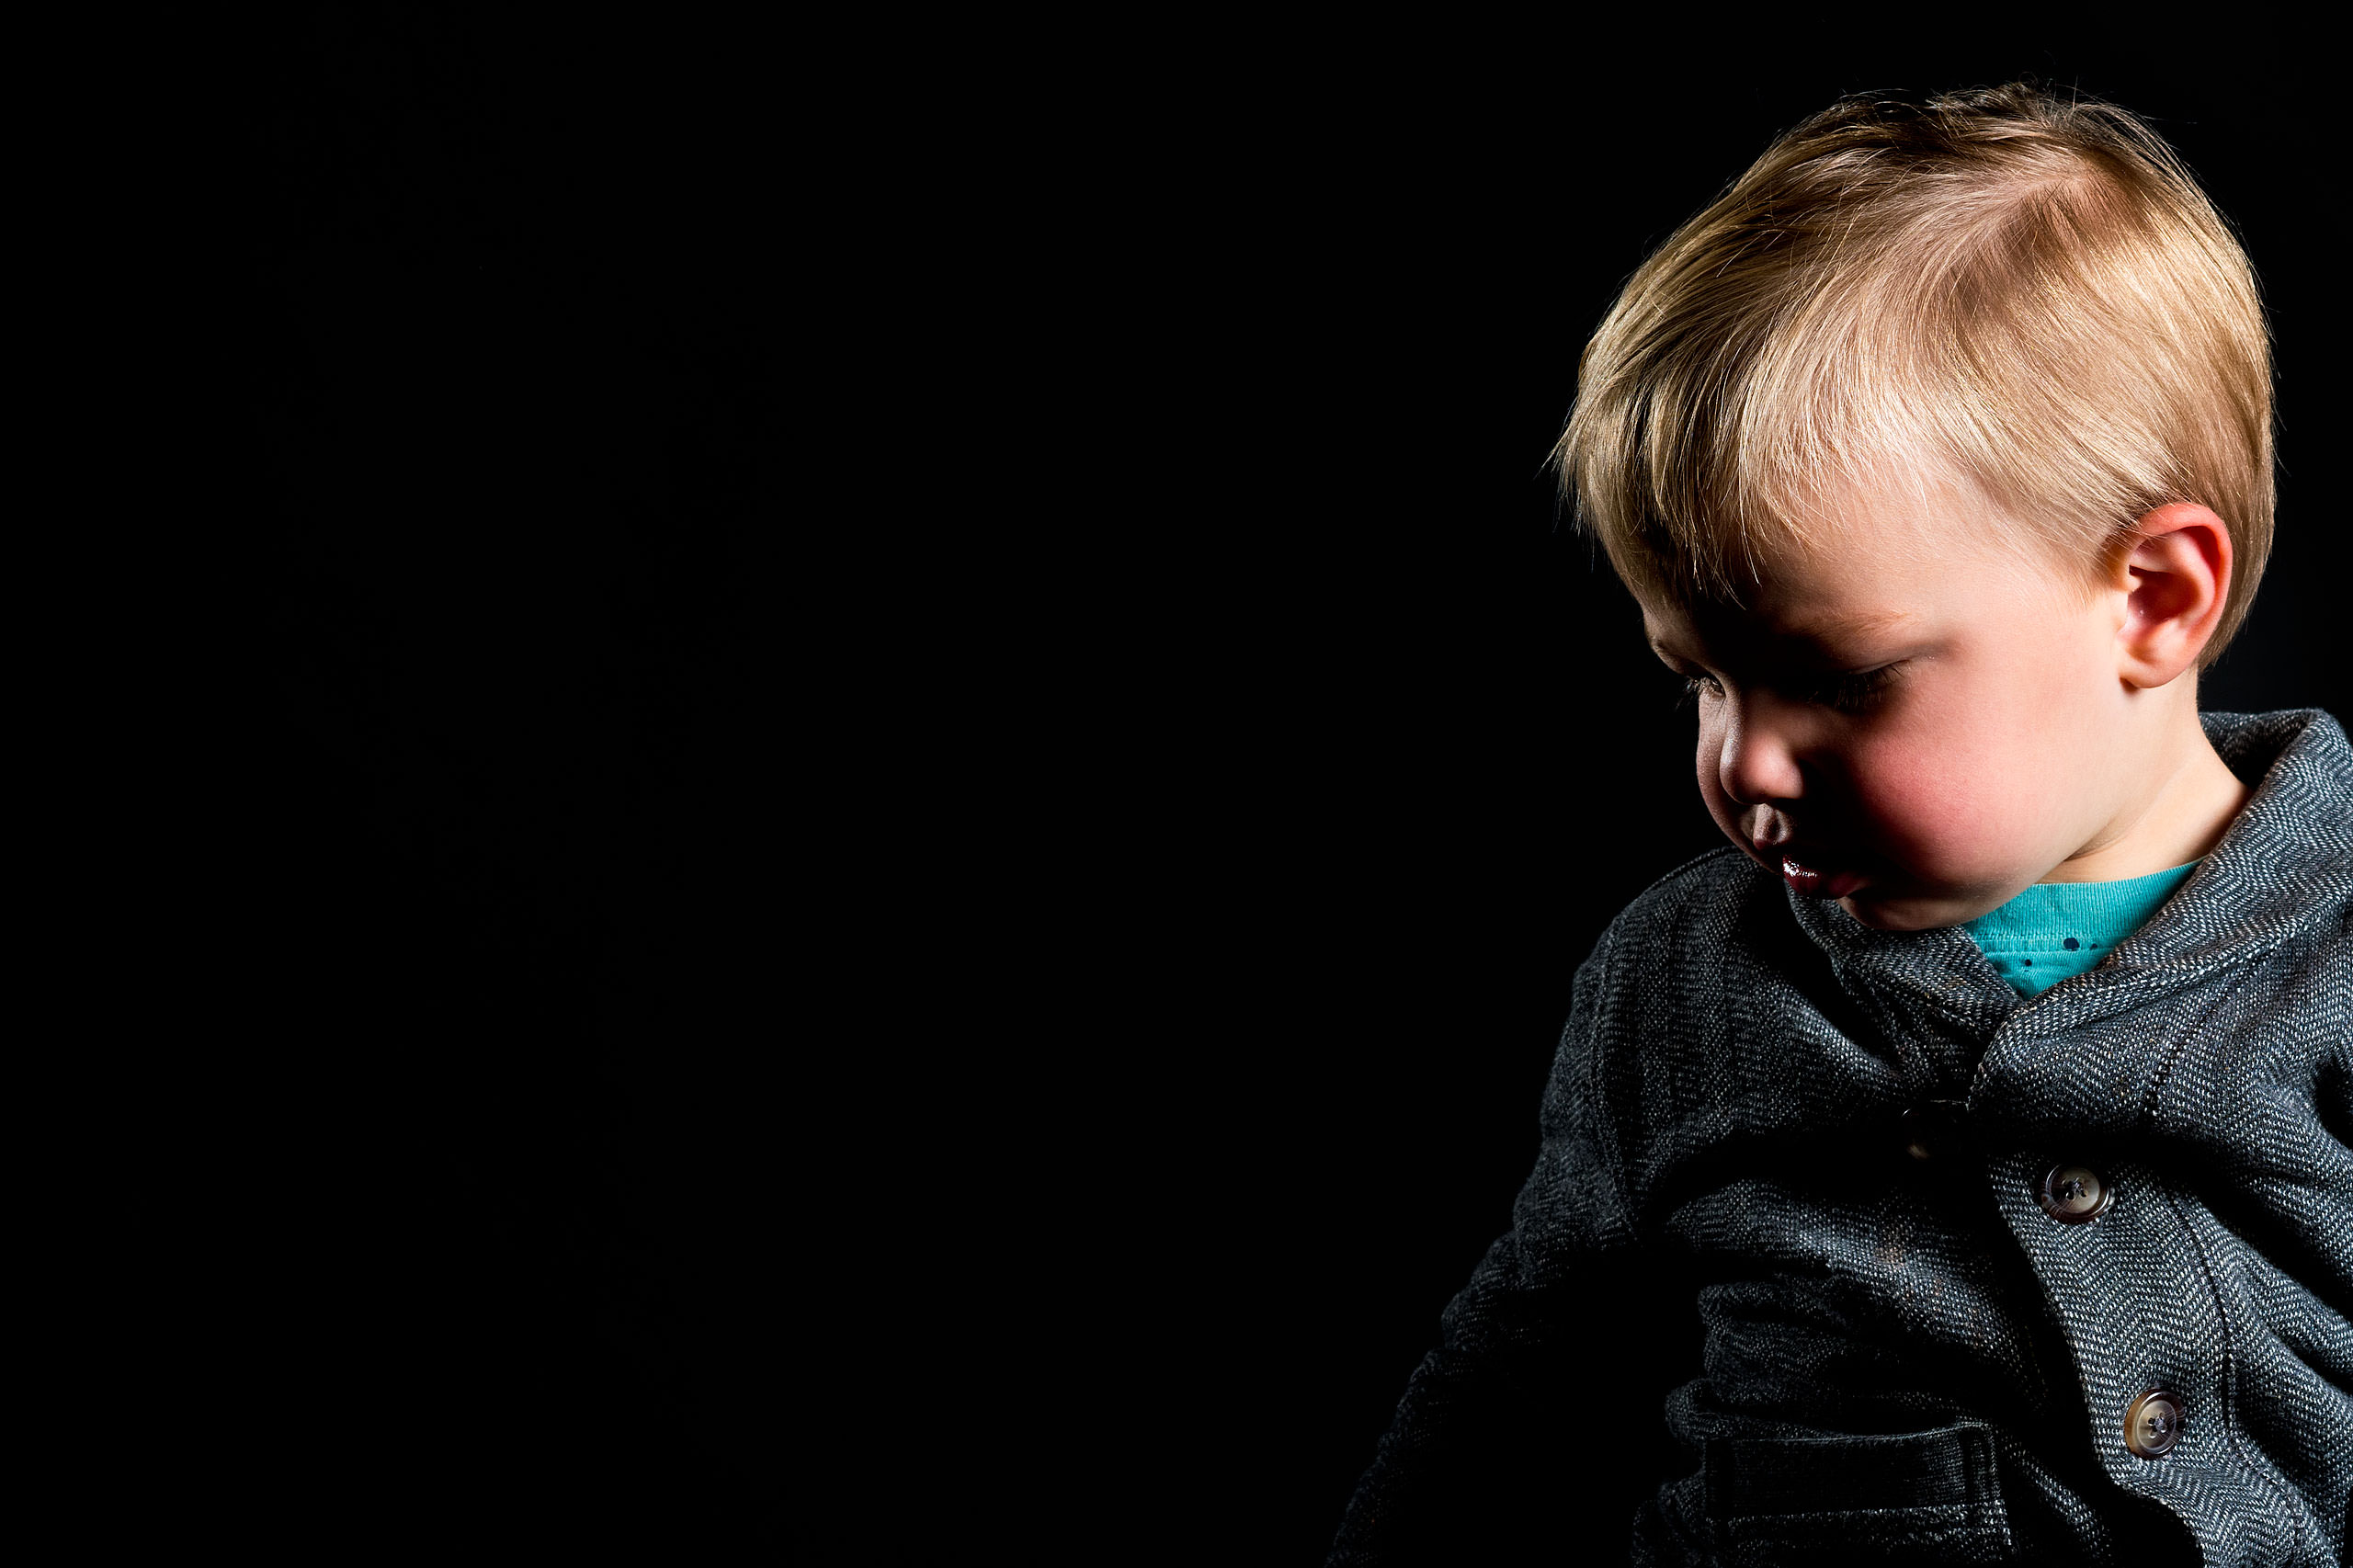 a young boy looking down and wearing a grey sweater for a calgary portrait studio session by sean leblanc